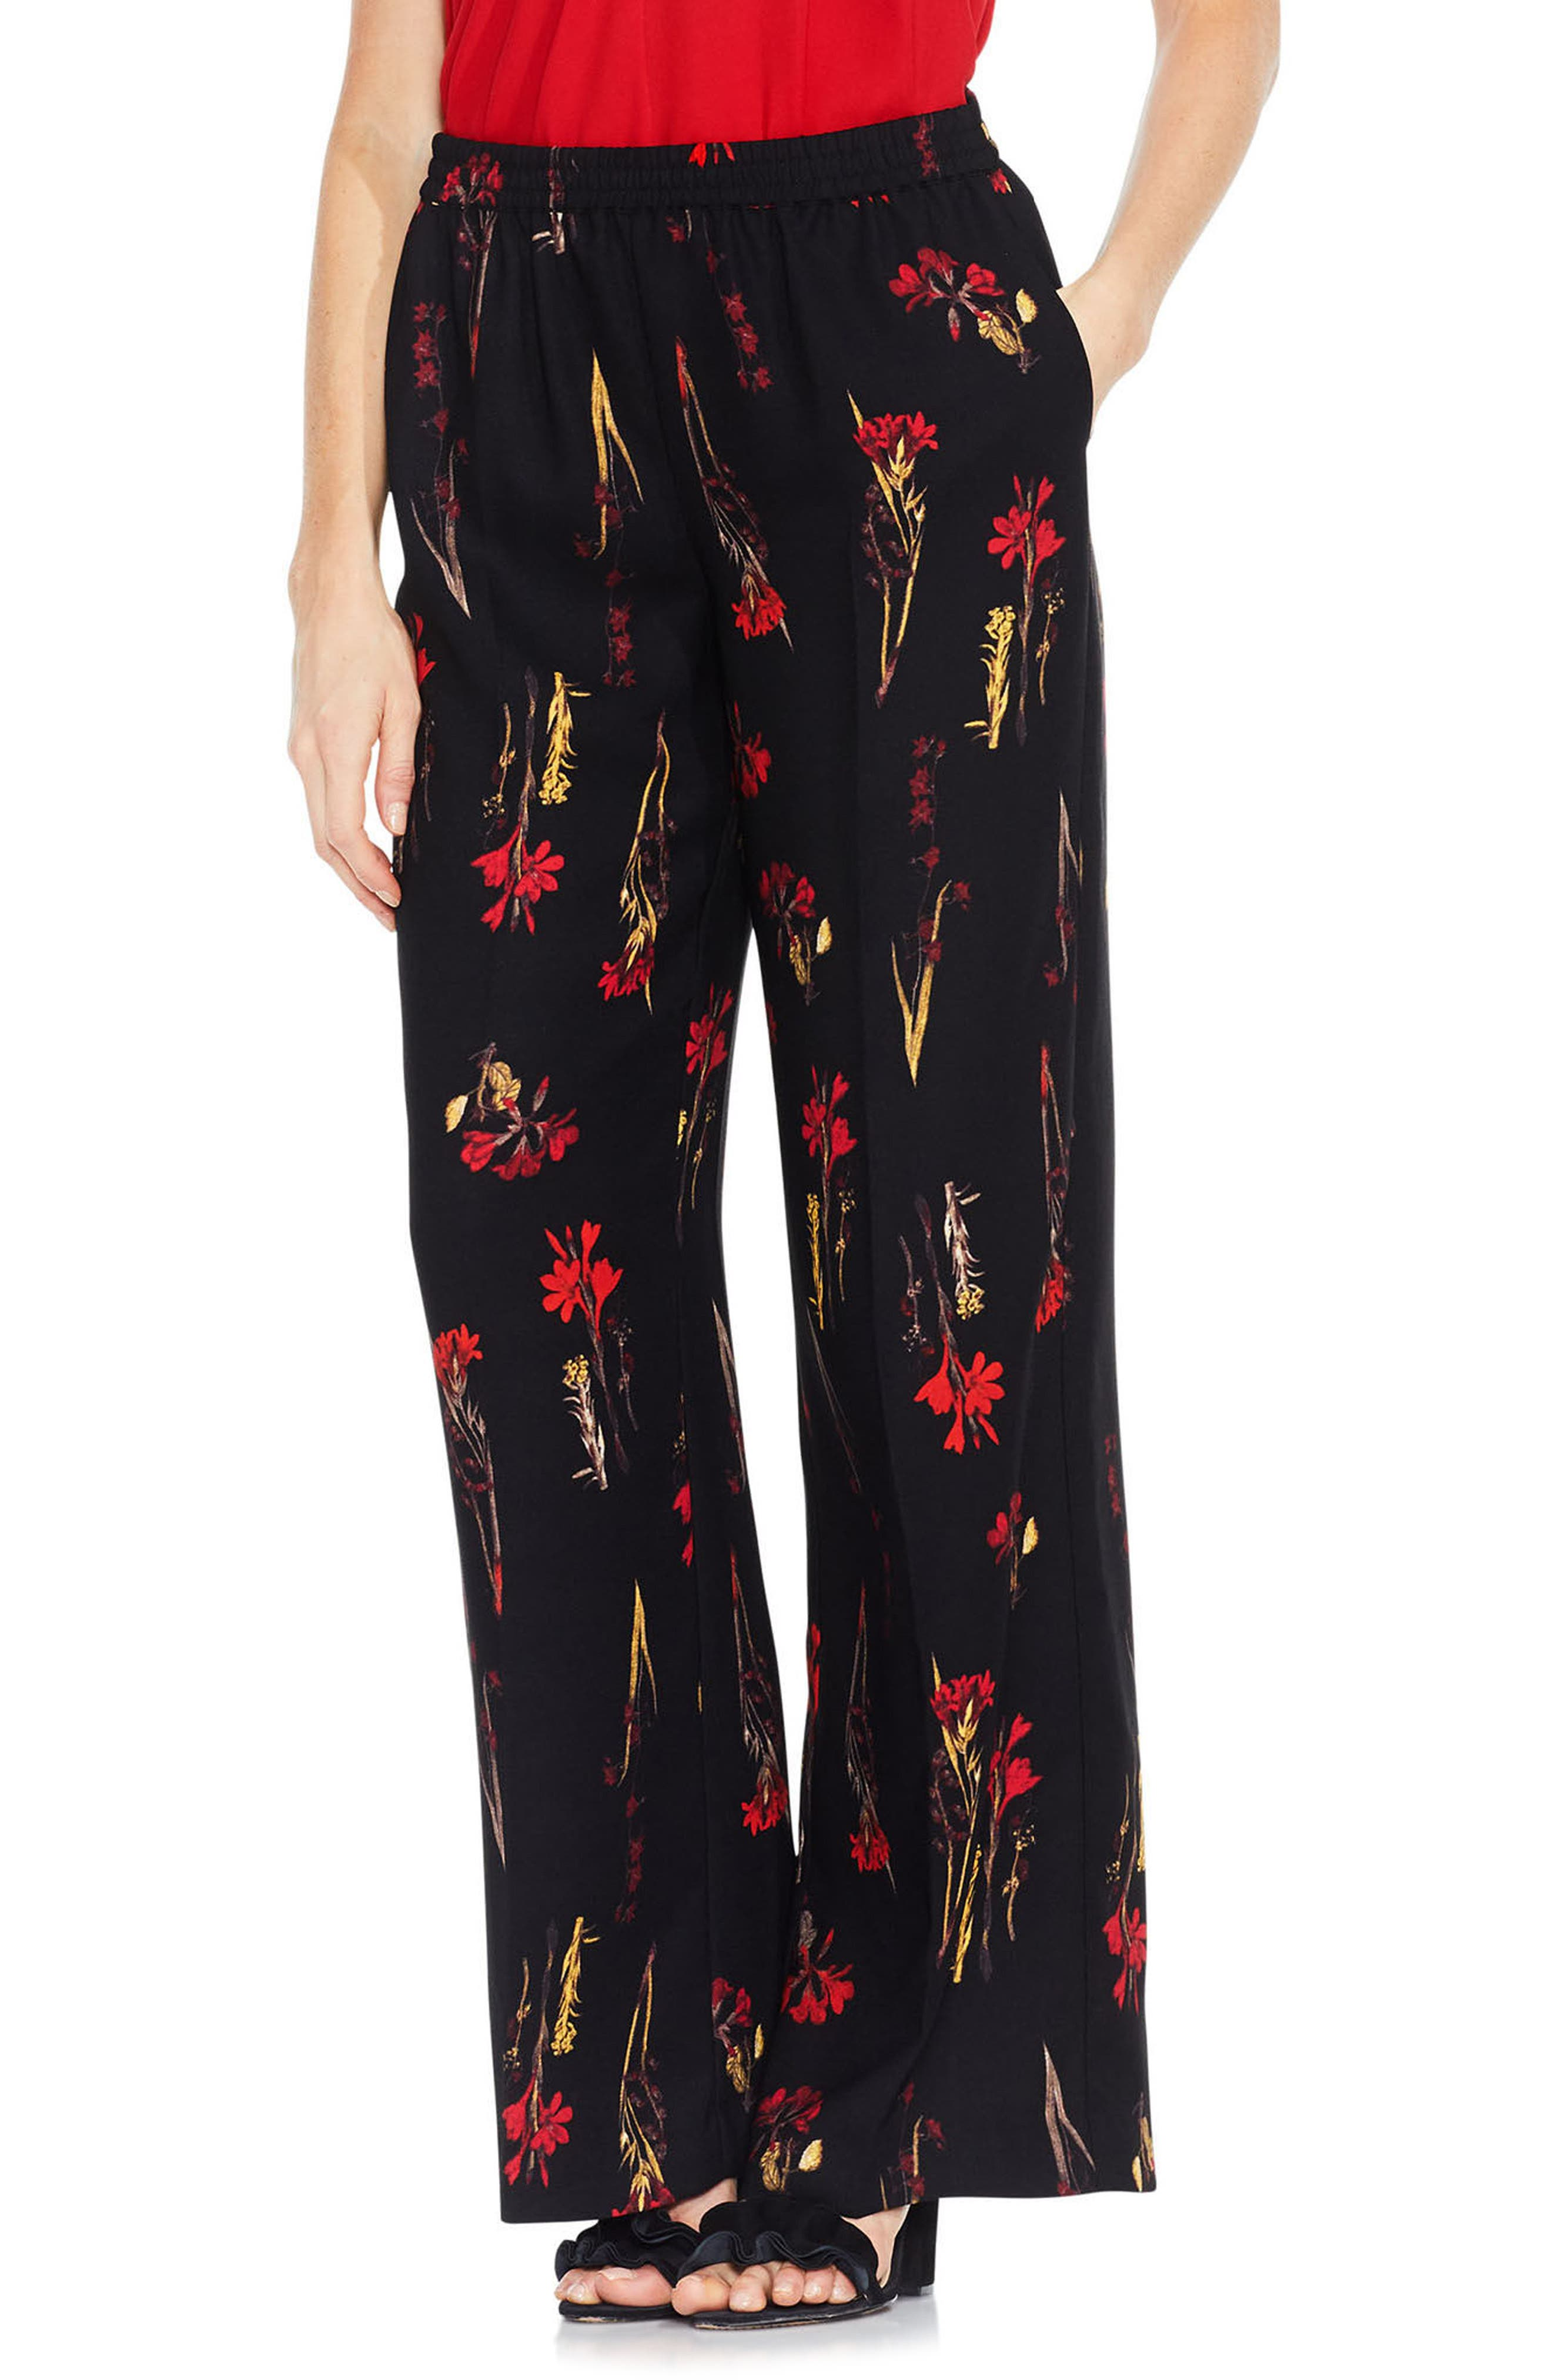 Alternate Image 1 Selected - Vince Camuto Botanical Print Wide Leg Pants